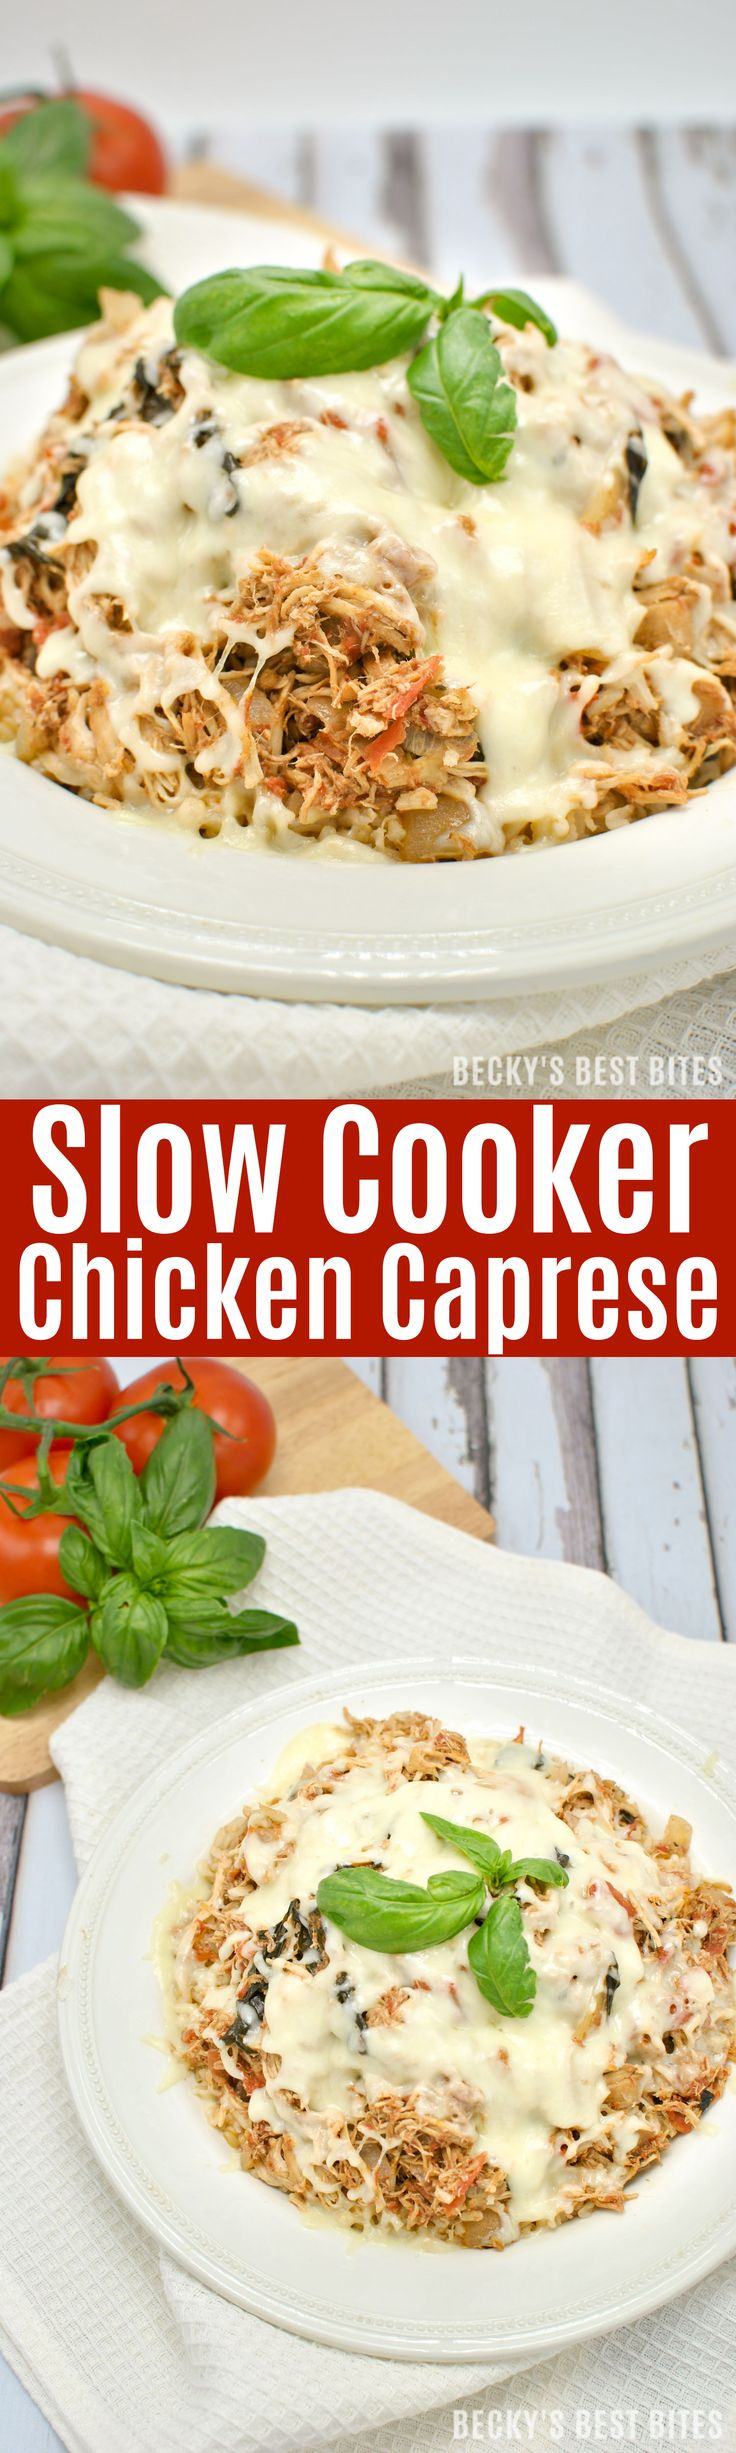 Slow Cooker Chicken Caprese is an easy, healthy dinner recipe for a perfect meal as the weather warms up. Enjoy all the flavors of the classic salad tonight and let the crock pot do all the work!!   beckysbestbites.com